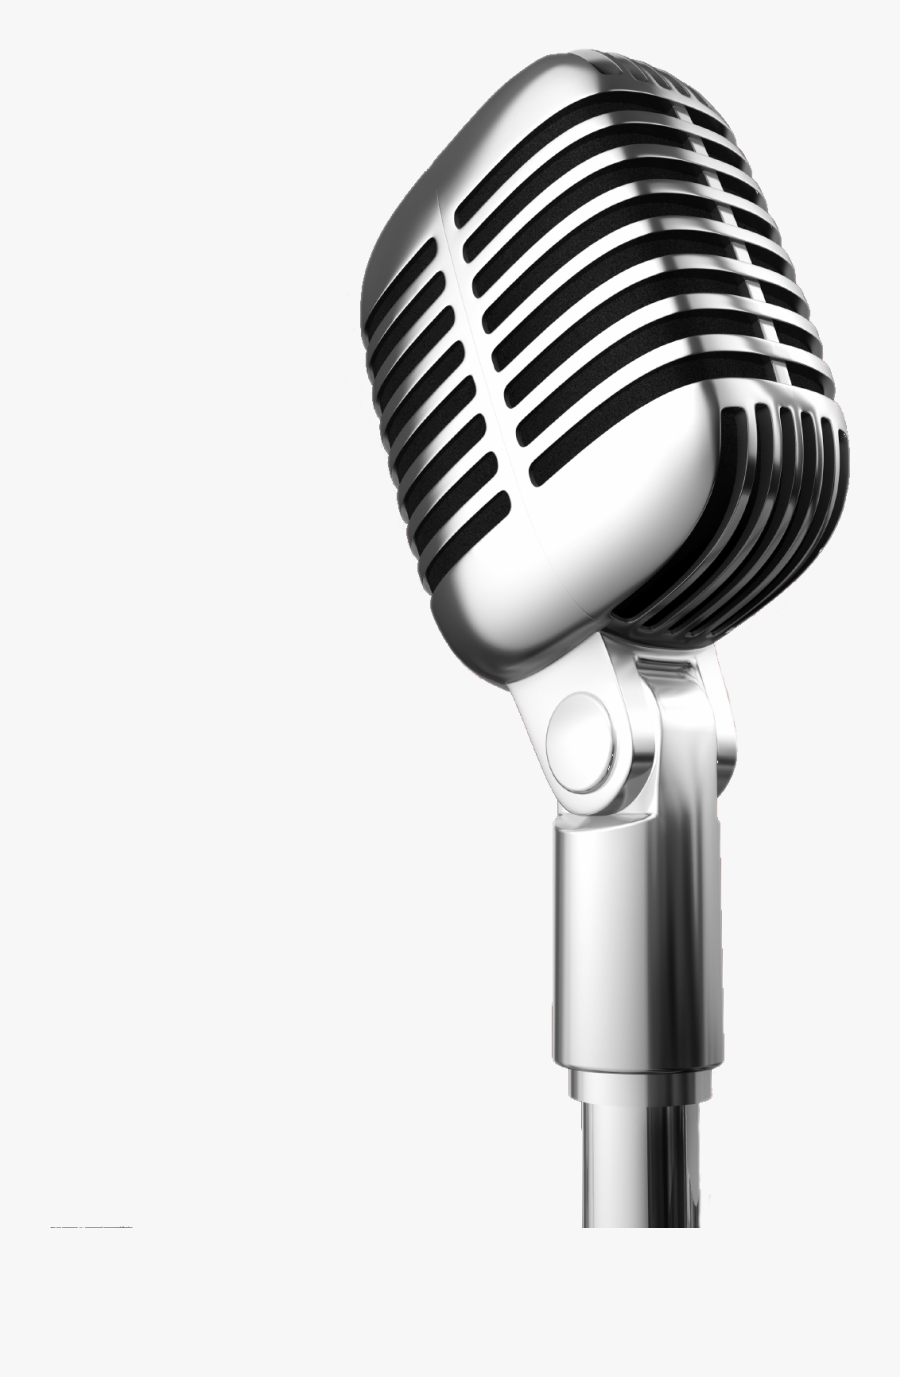 Microphone News Book Human Voice Recording Studio - Microphone Transparent, Transparent Clipart